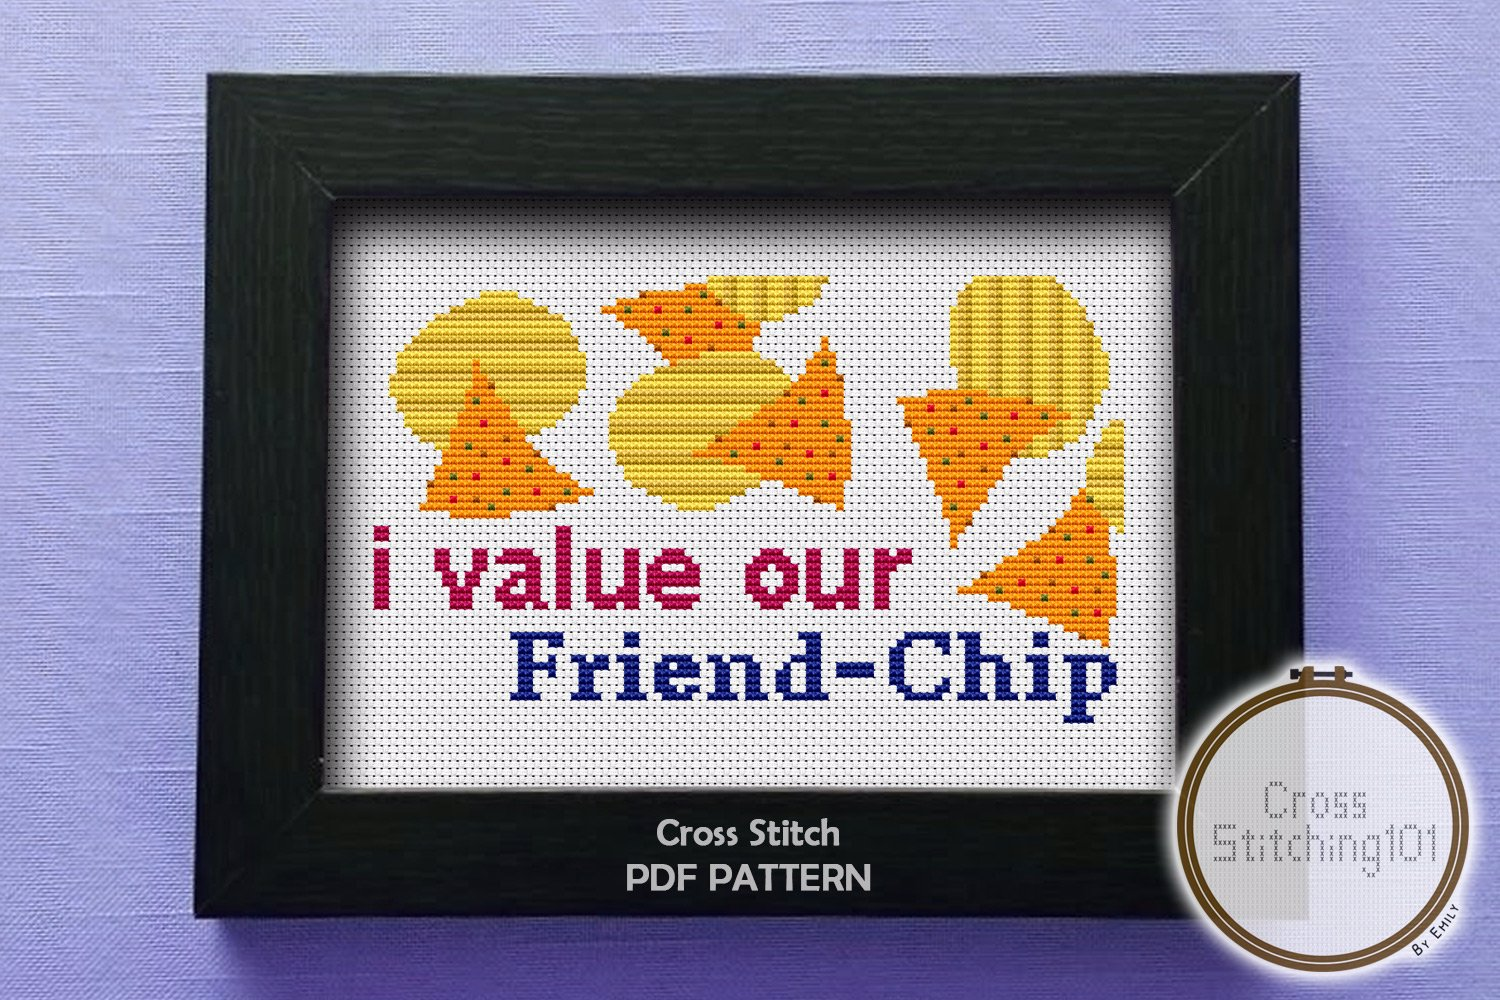 I Value Our Friend-Chip  Cross Stitch PDF